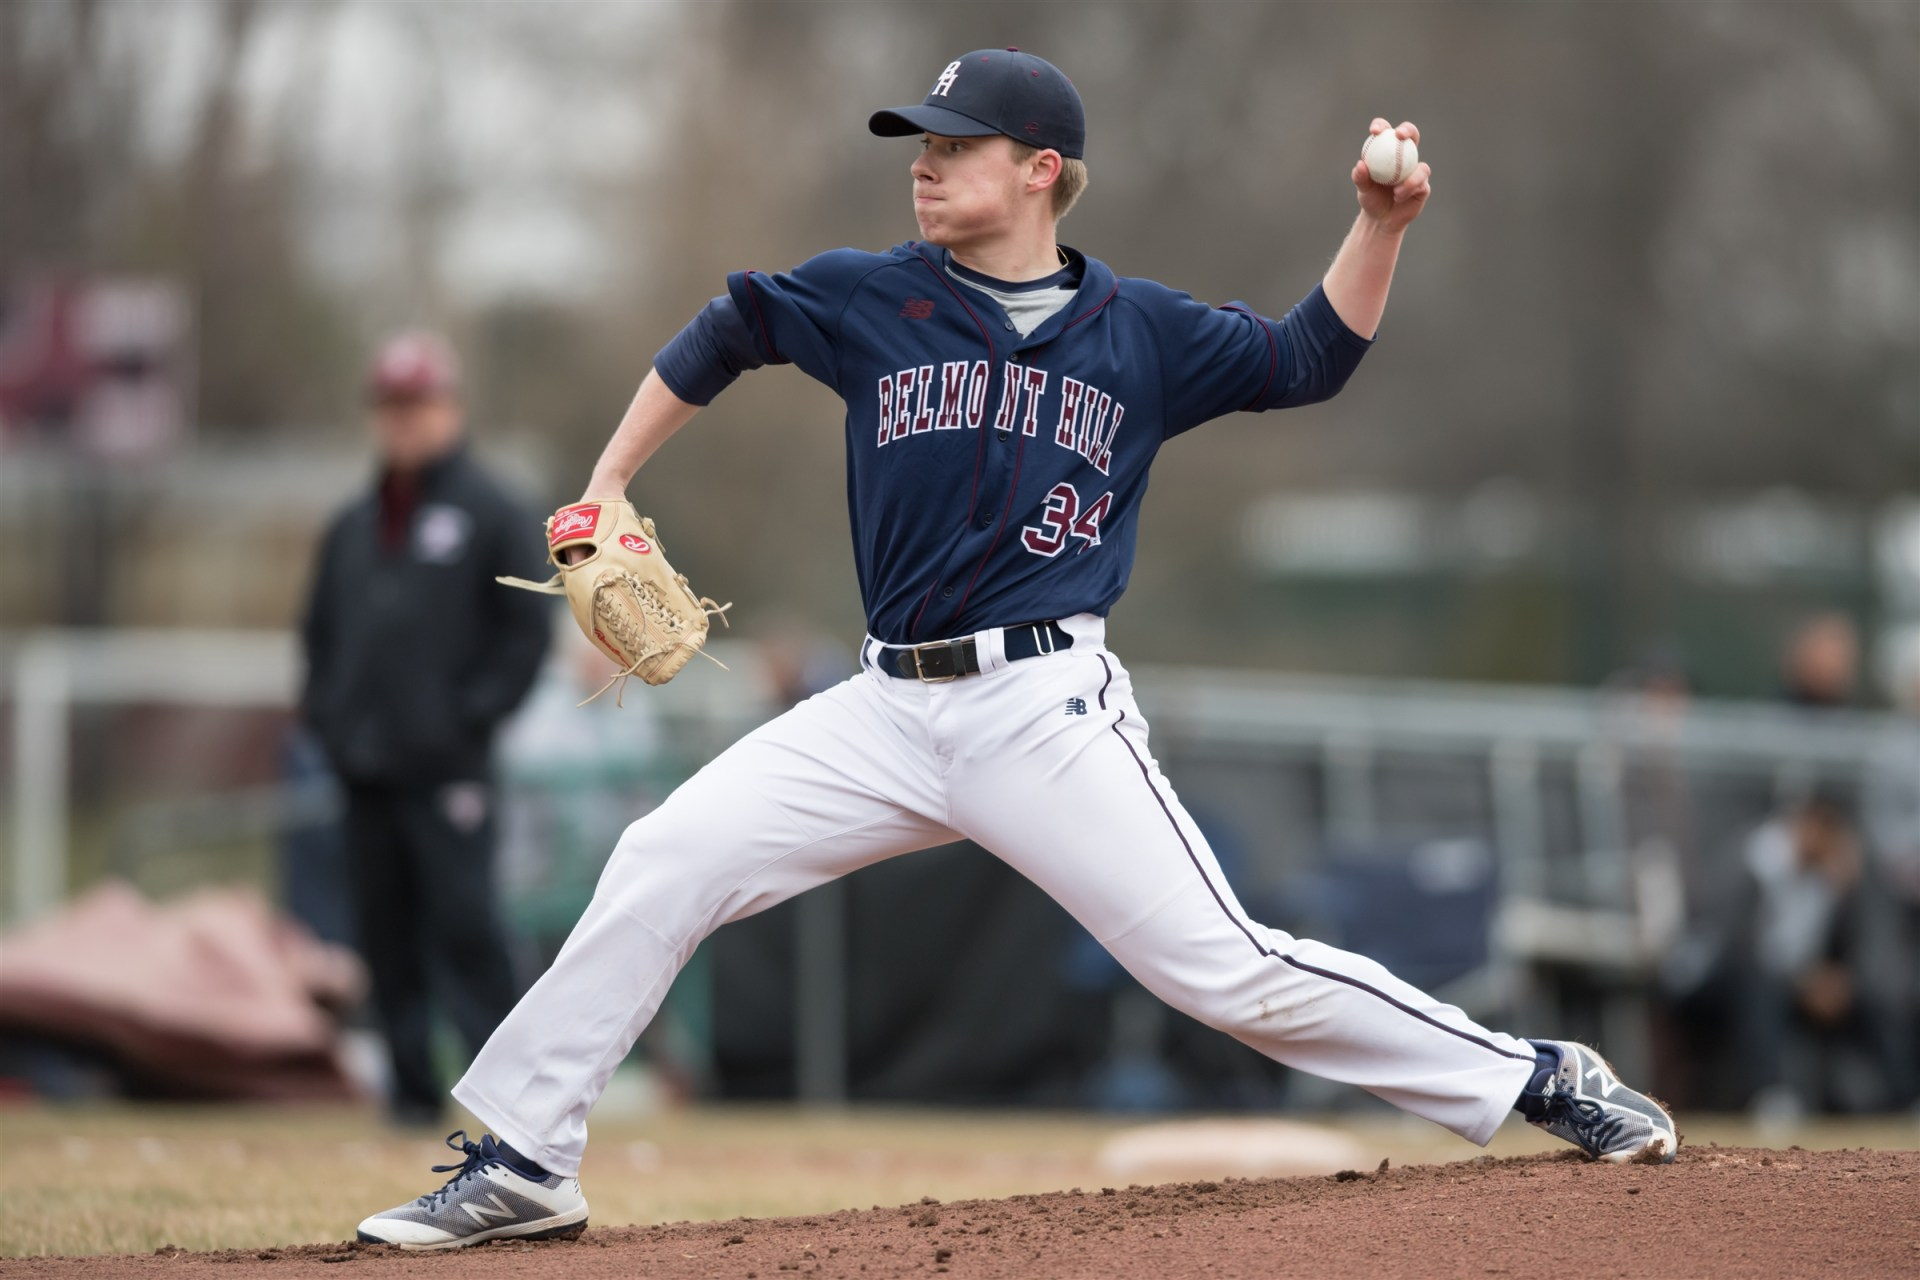 In a League of their Own: Belmont Hill Baseball